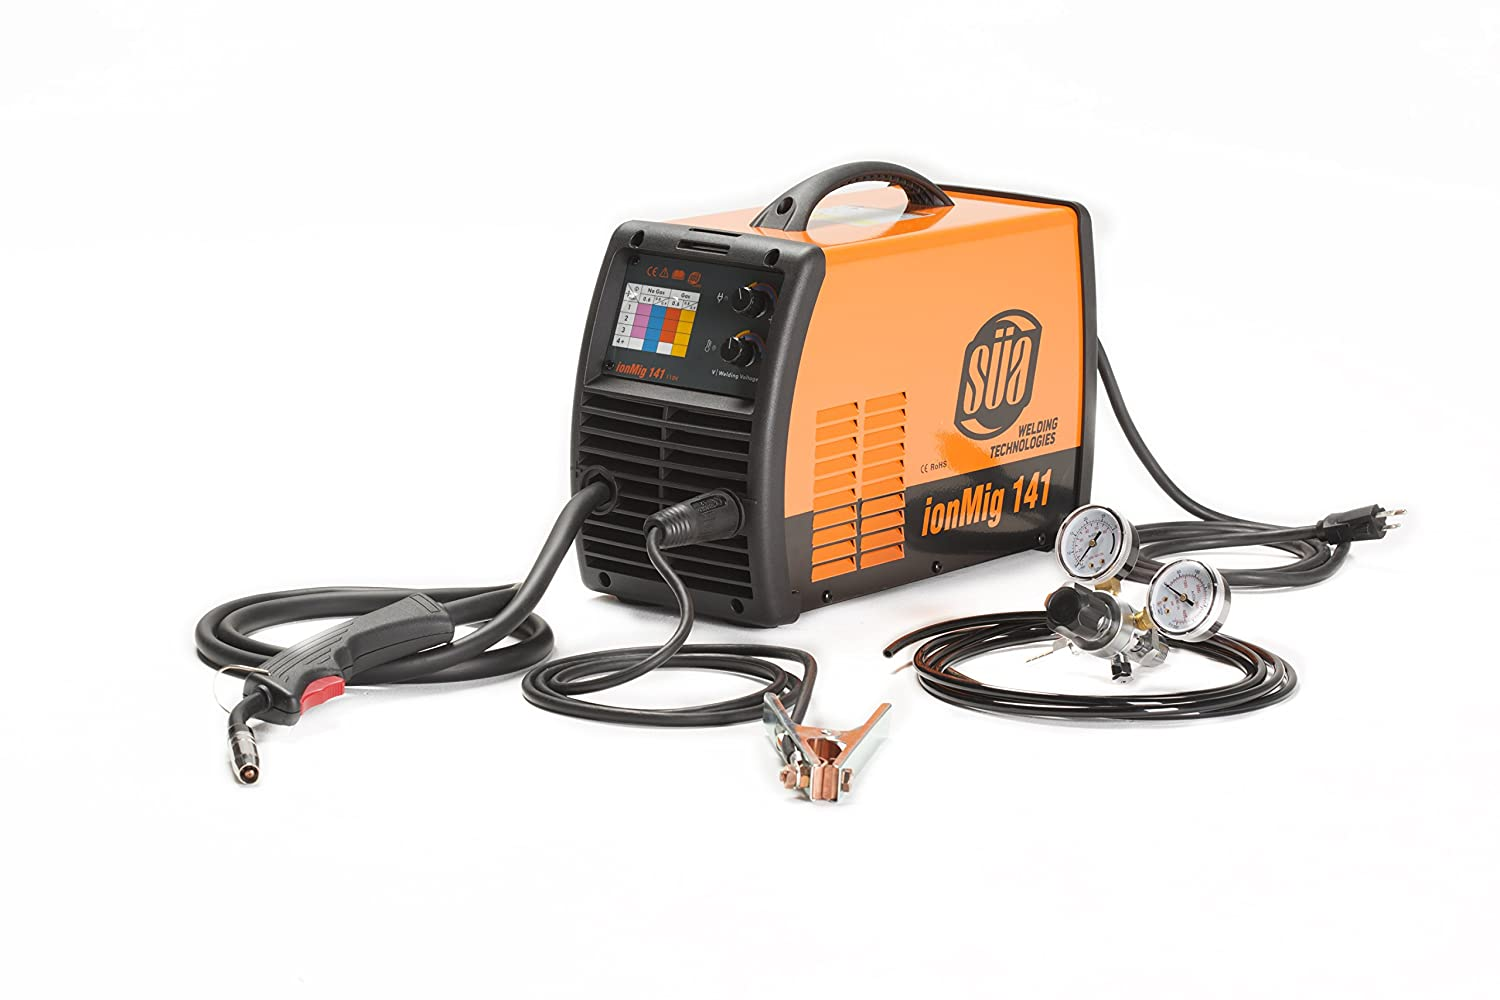 SÜA ionMig 141 Inverter IGBT MIG Welding Machine - 110 Volts - Uses ...